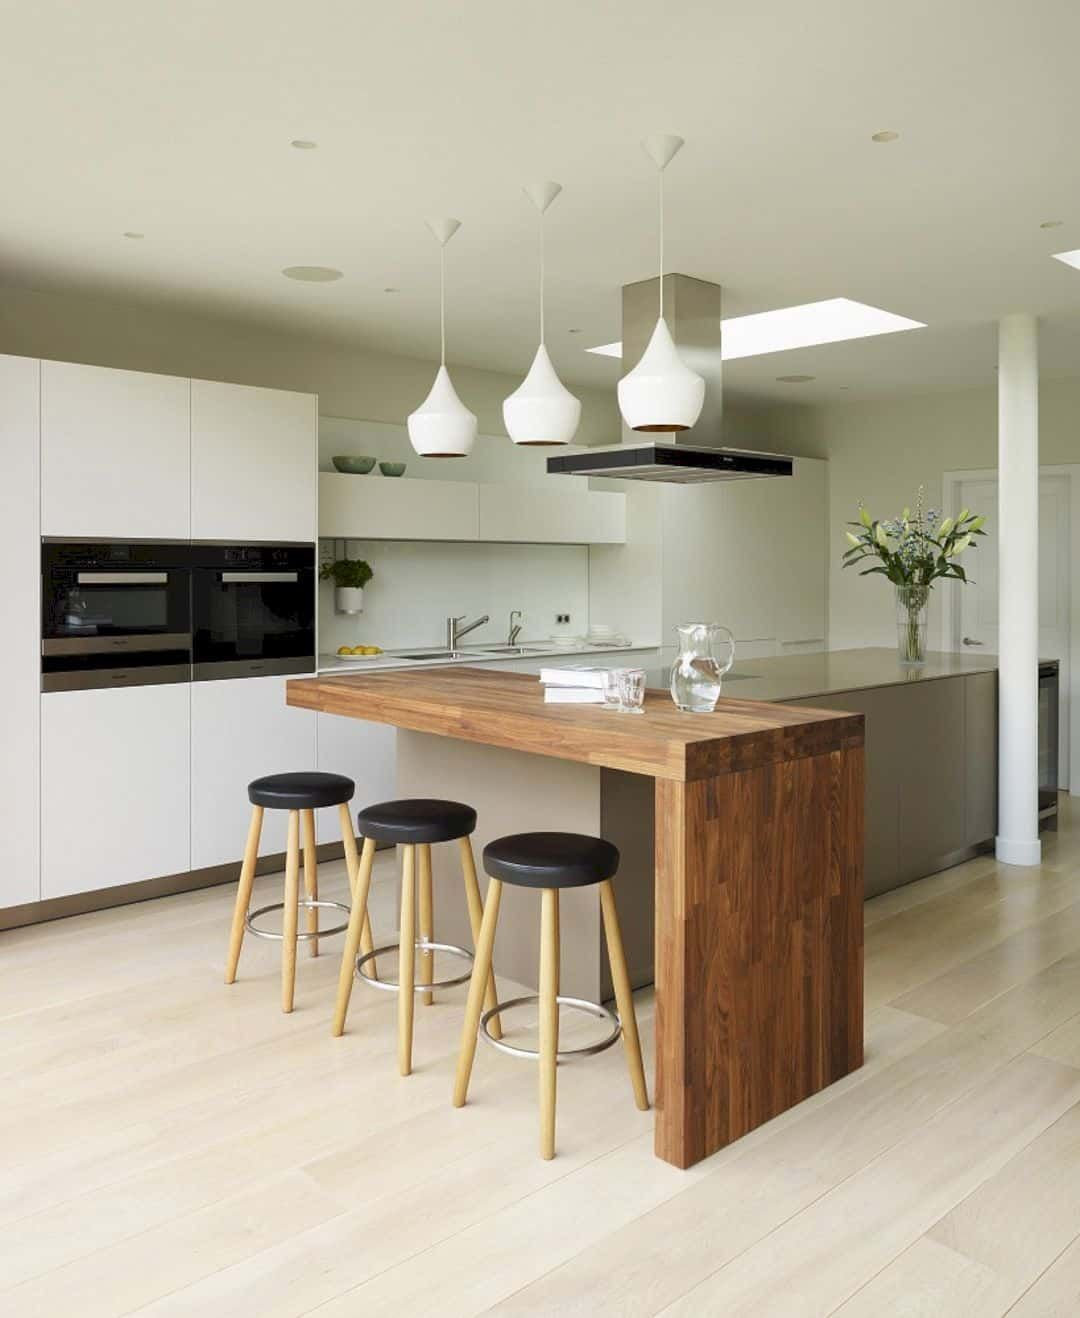 a guide to efficient small kitchen design for apartment diy kitchen island extension diy on kitchen island ideas diy id=21542